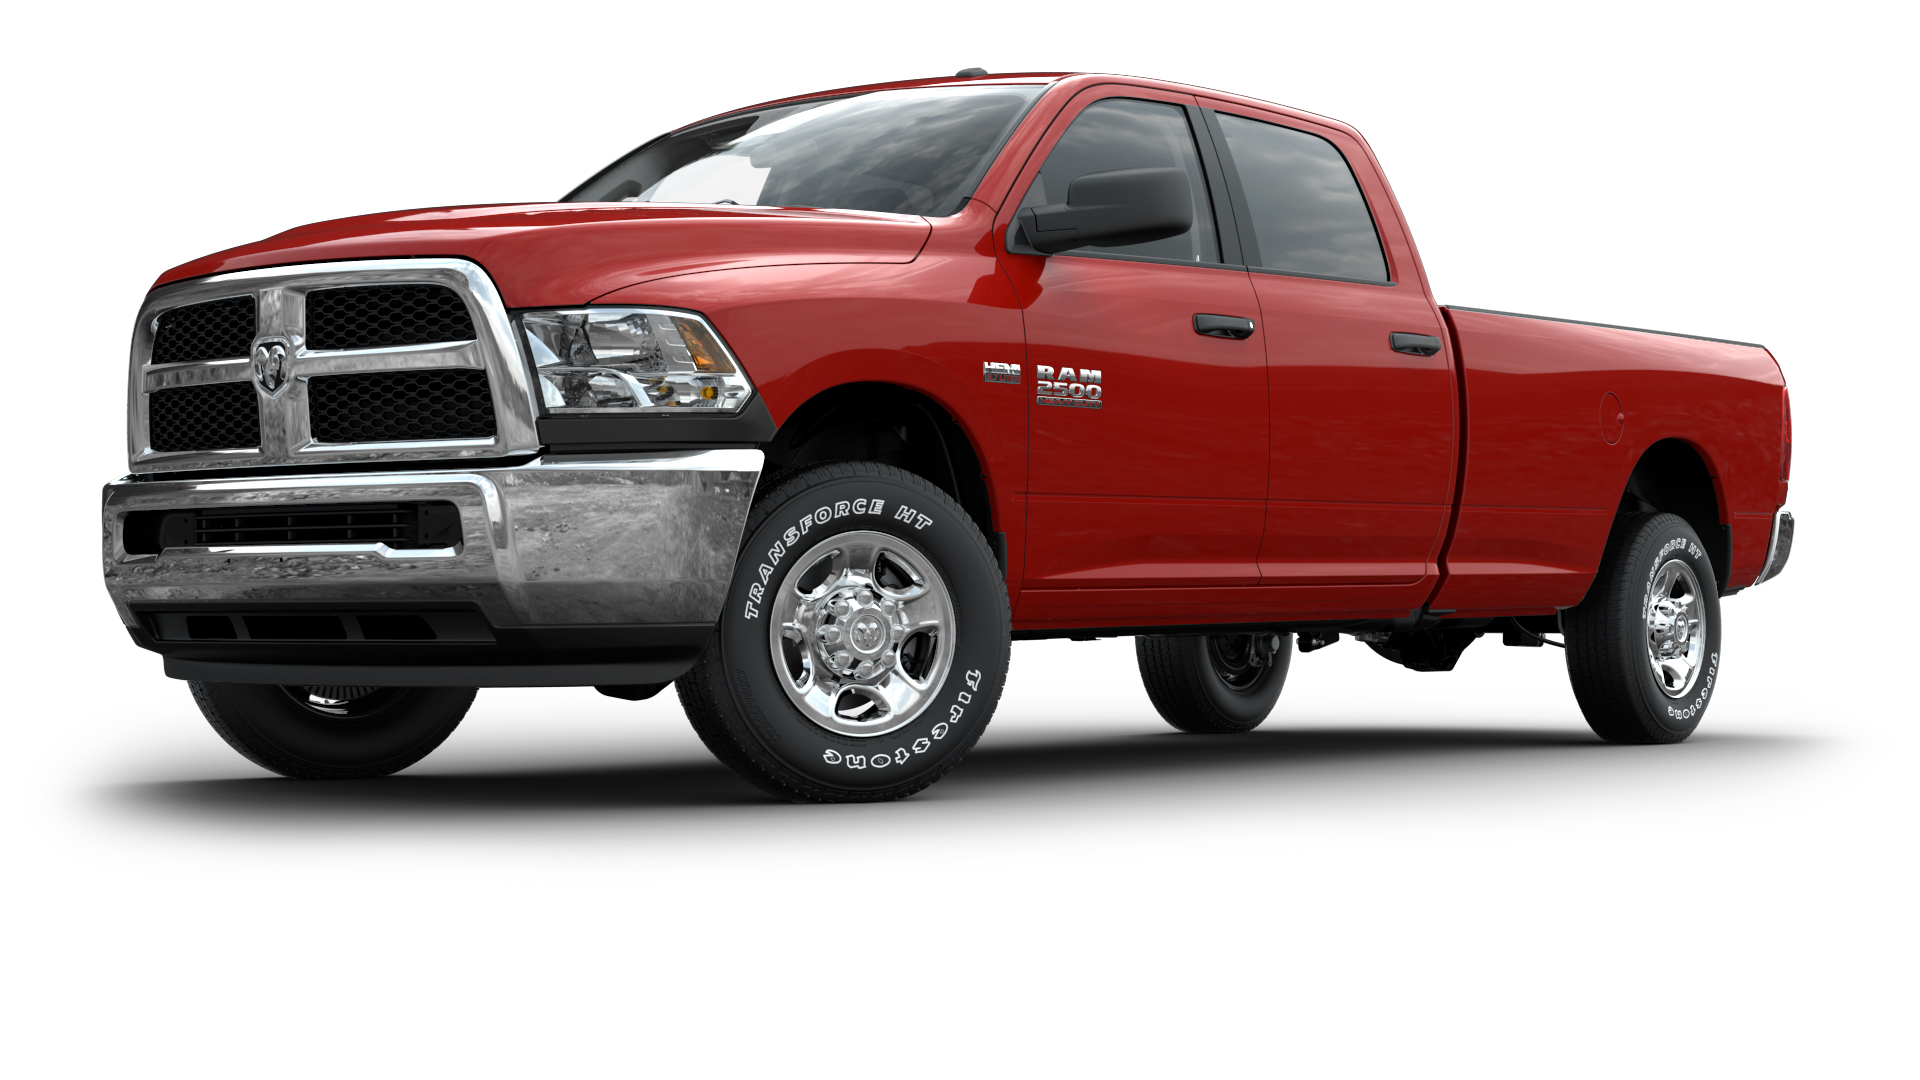 2014 Ram Heavy Duty Lineup Gets New V8 Hemi - autoevolution